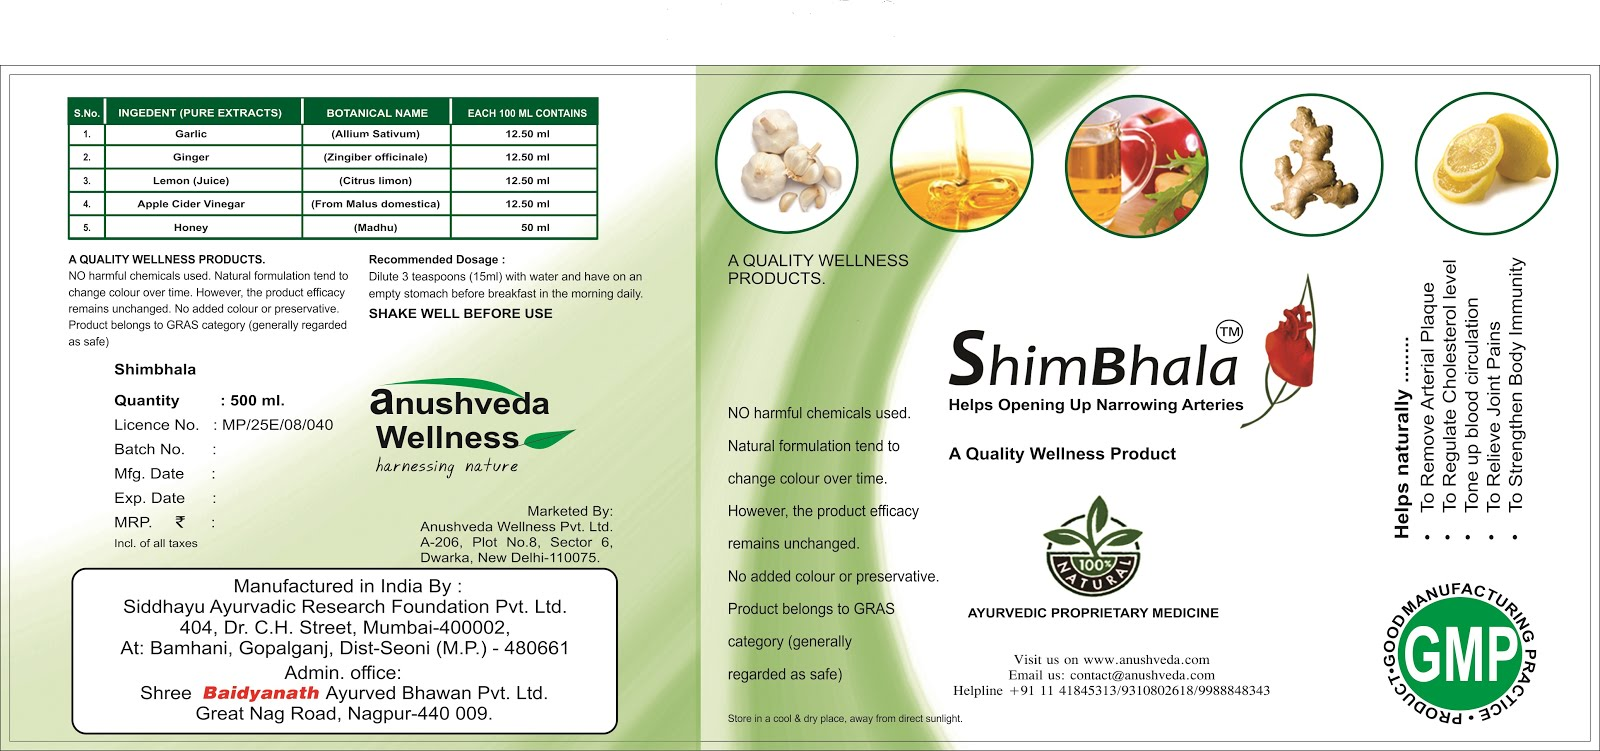 SHIMBHALA for Heart Disease